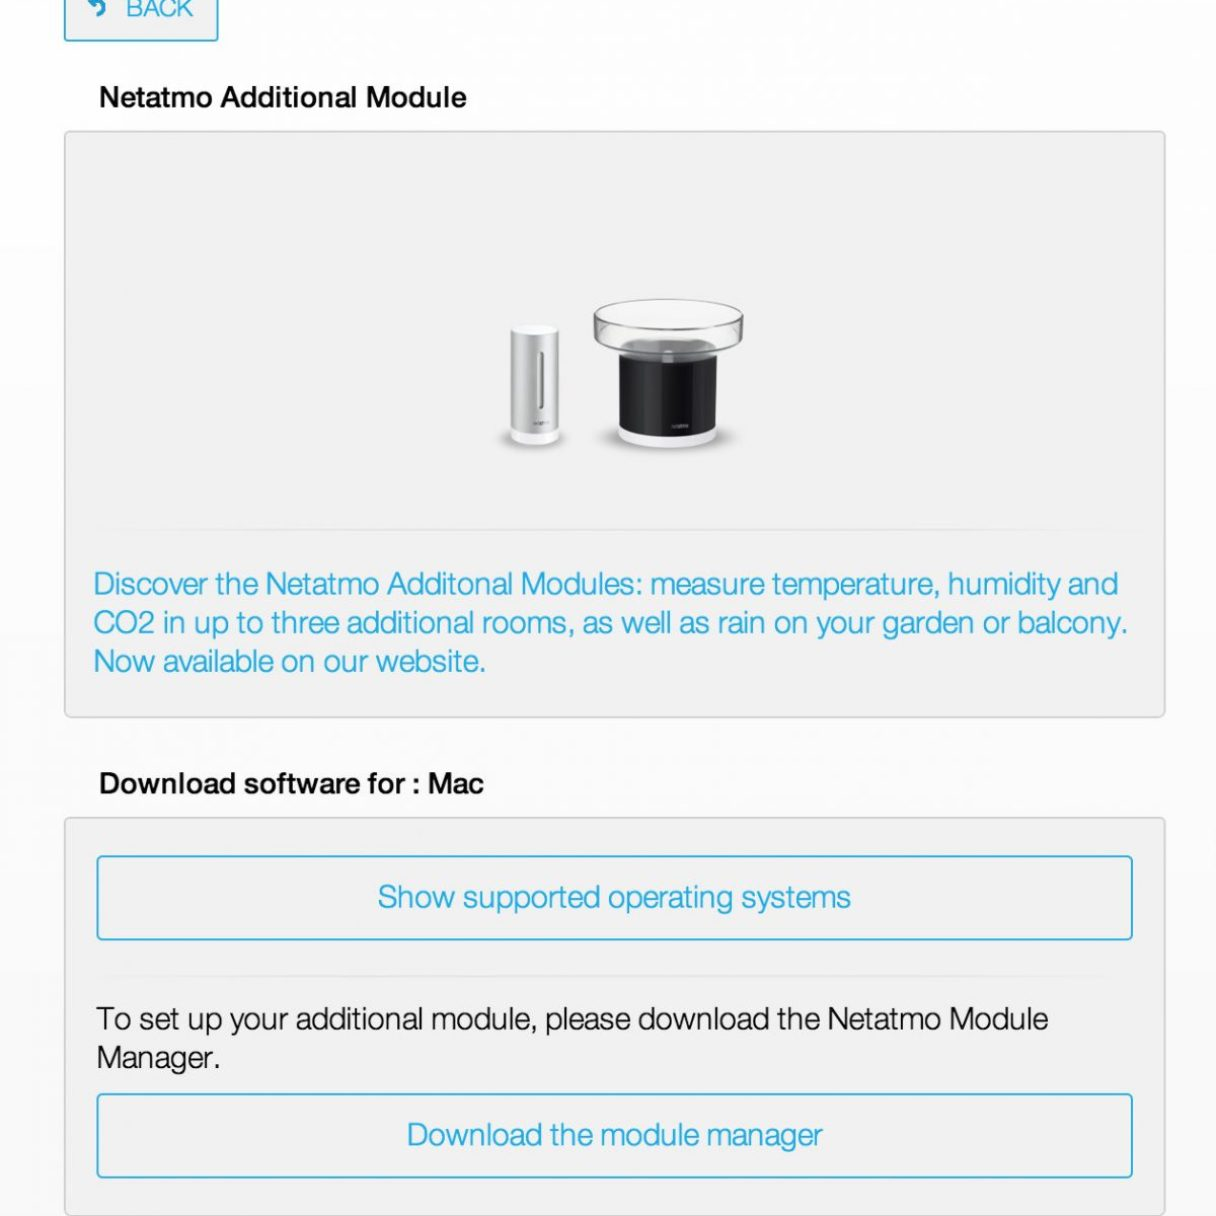 Download the rain gauge connection software for your operating system